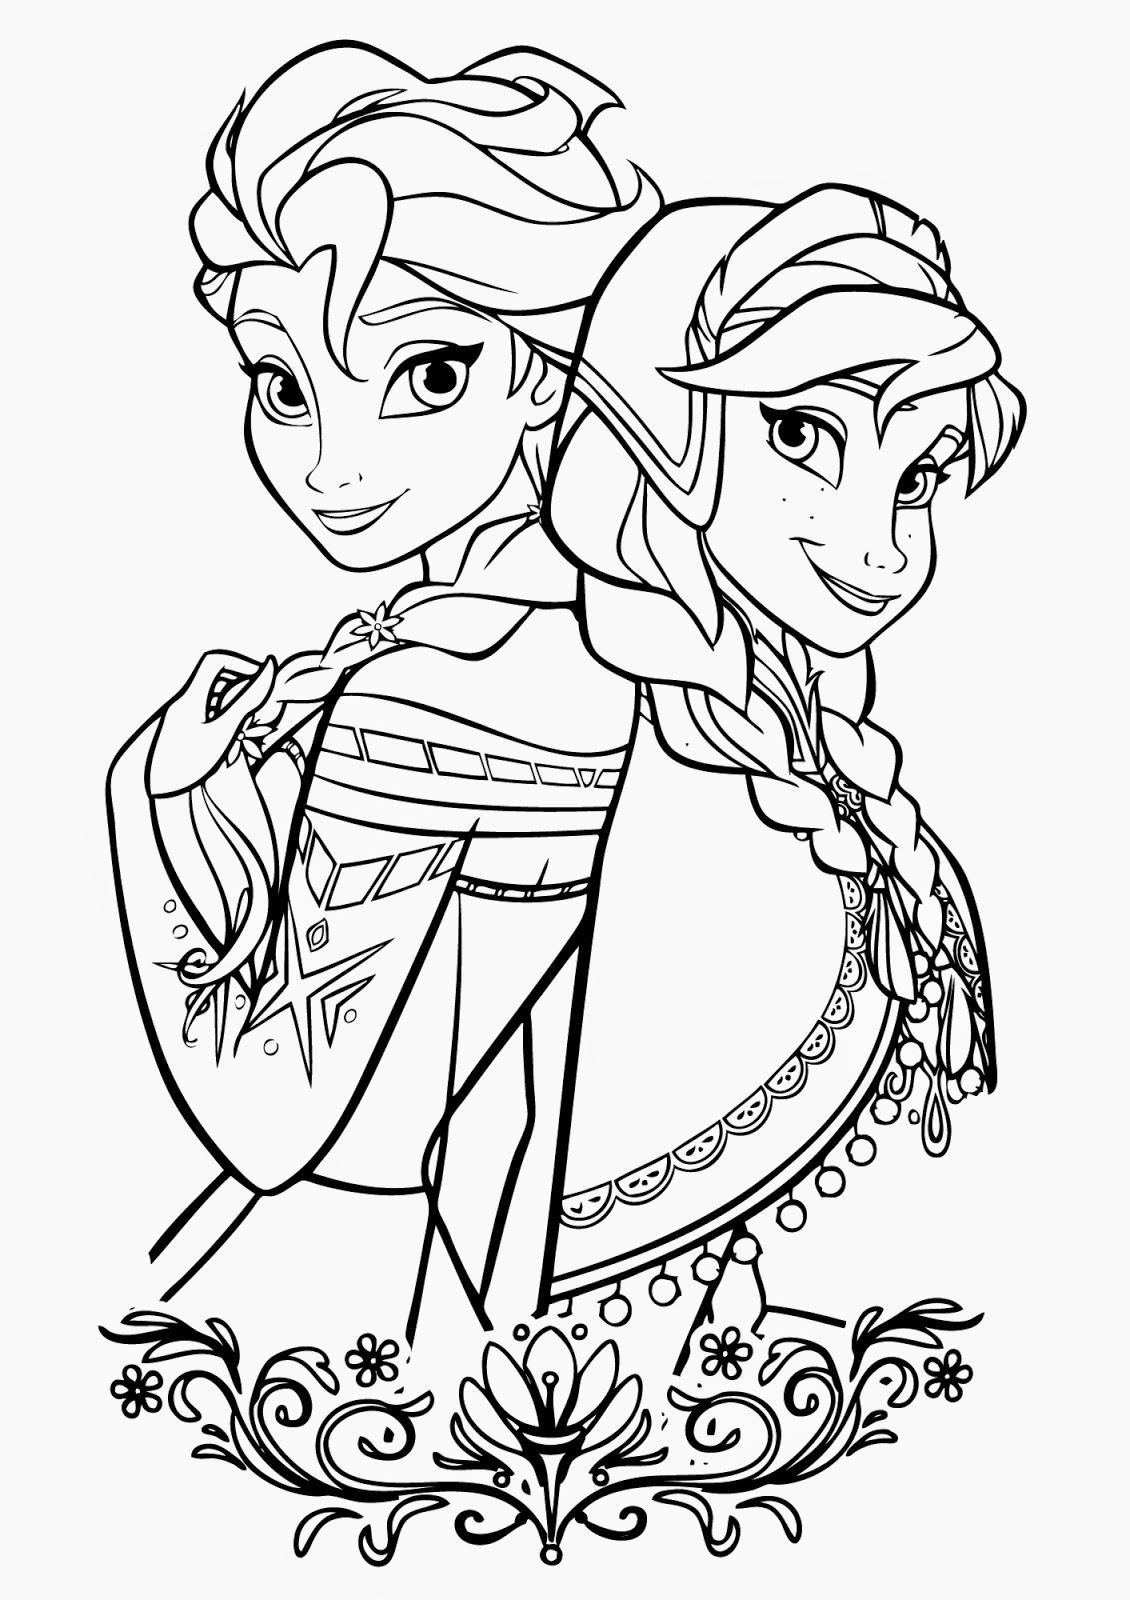 free kids coloring pages frozen - photo#21